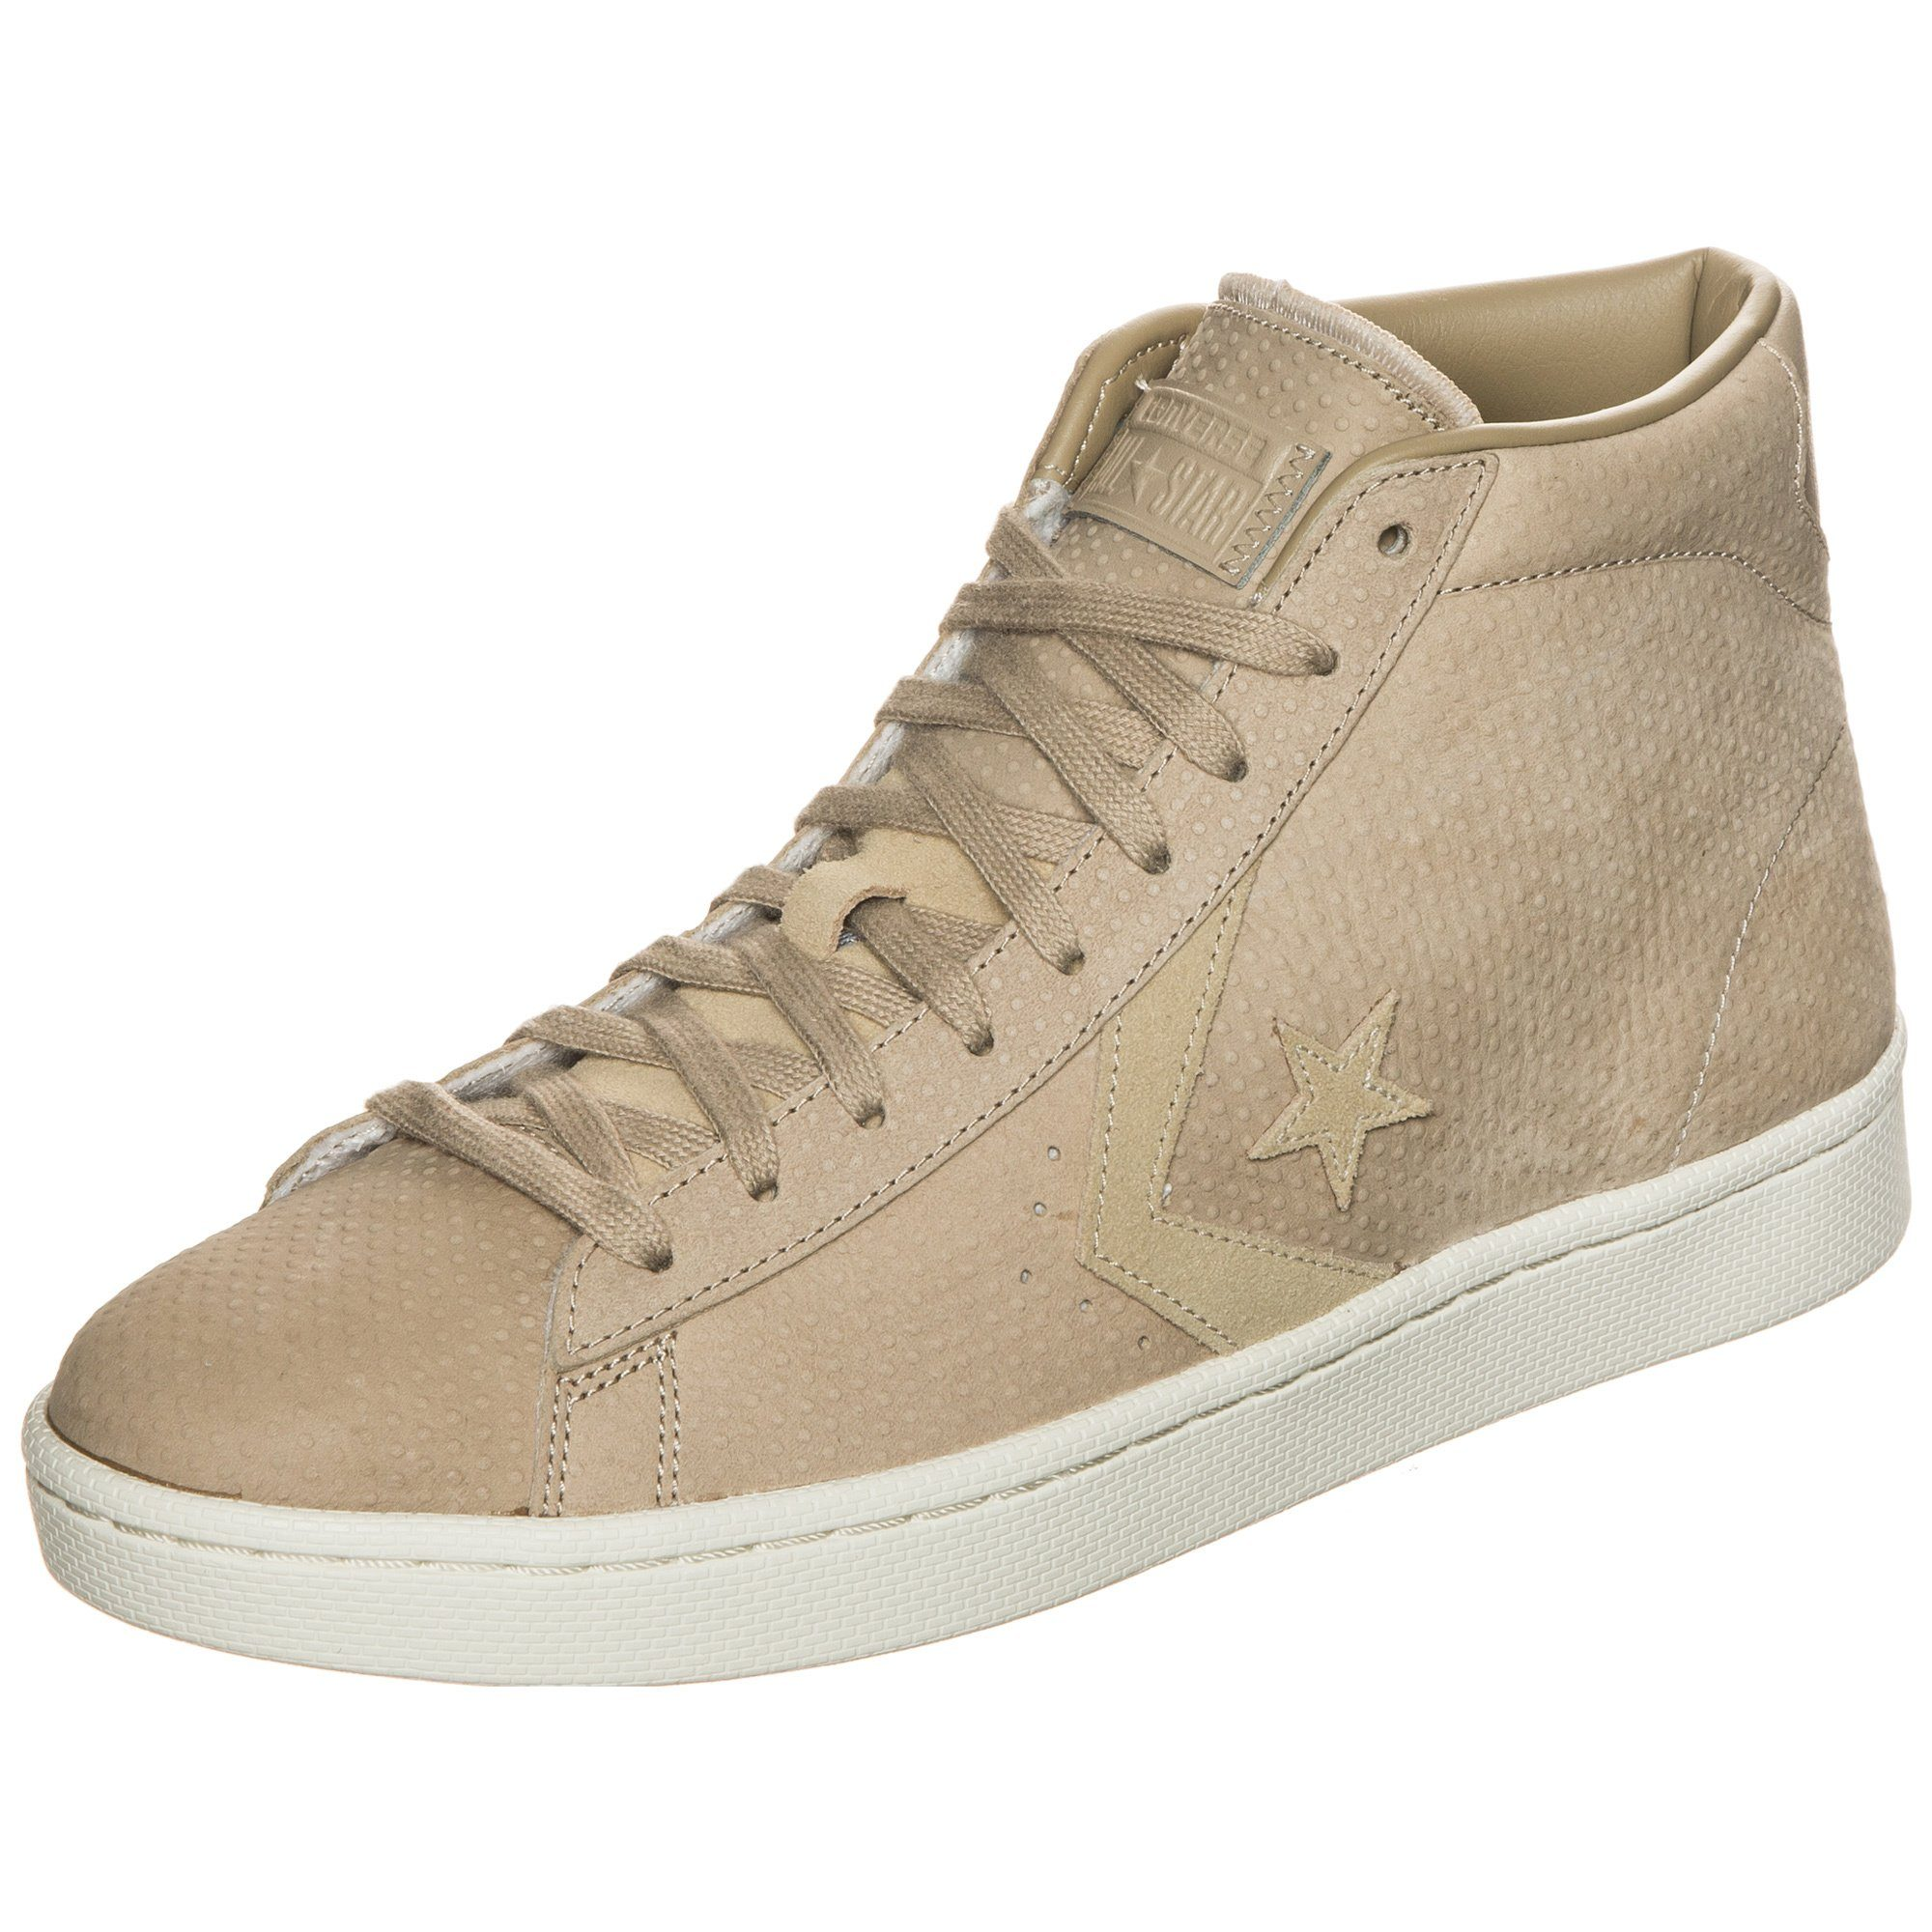 Converse Sneaker Pro Leather 76 Lux Leather Mid